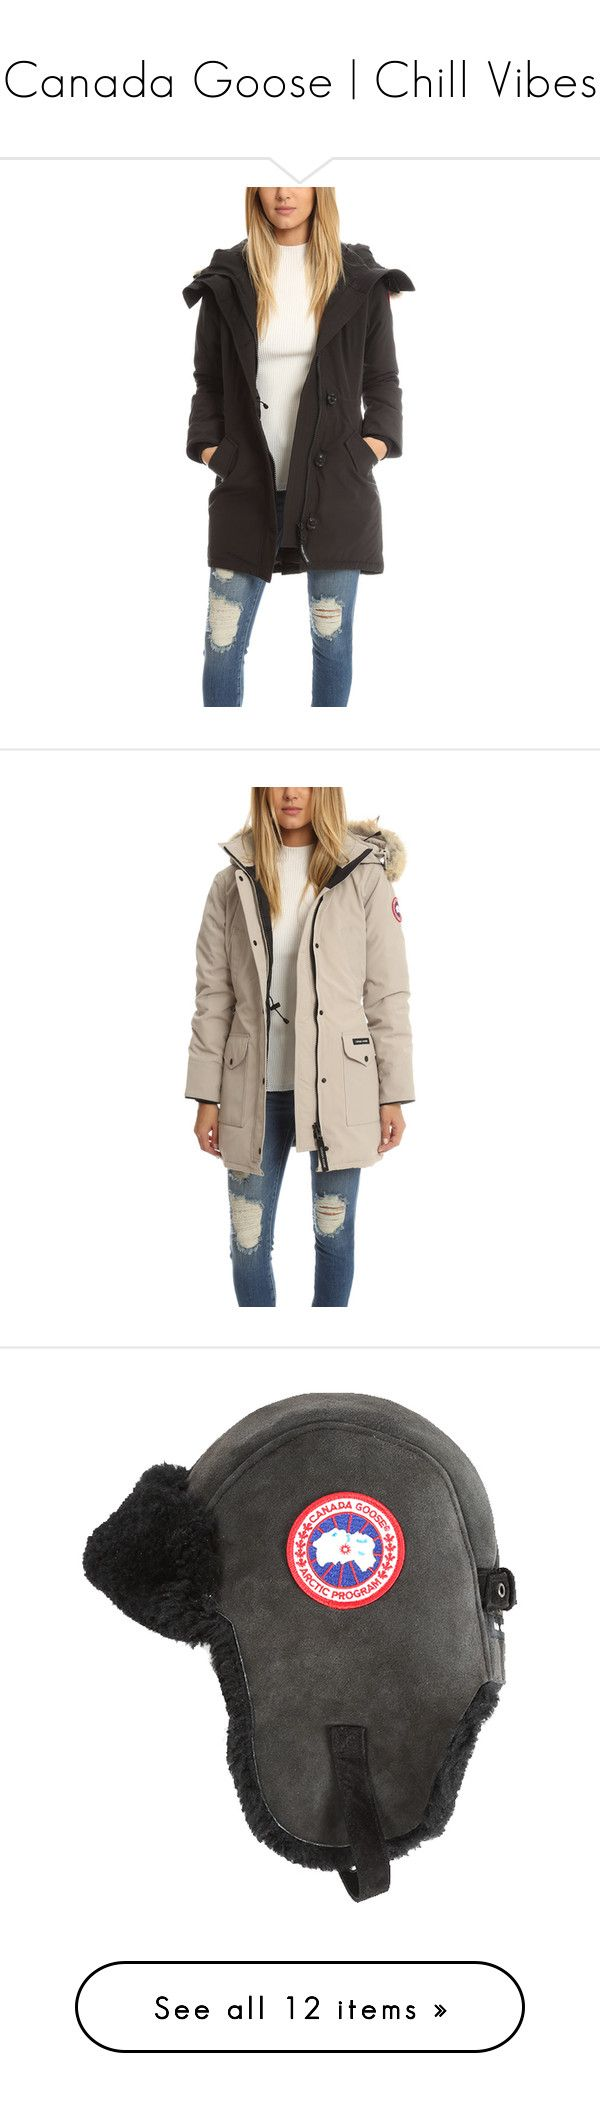 Canada Goose | Chill Vibes by blueandcream on Polyvore featuring women's fashion, outerwear, coats, women, canada goose, utility coat, parka coat, white parka, white parka coat and pink parkas